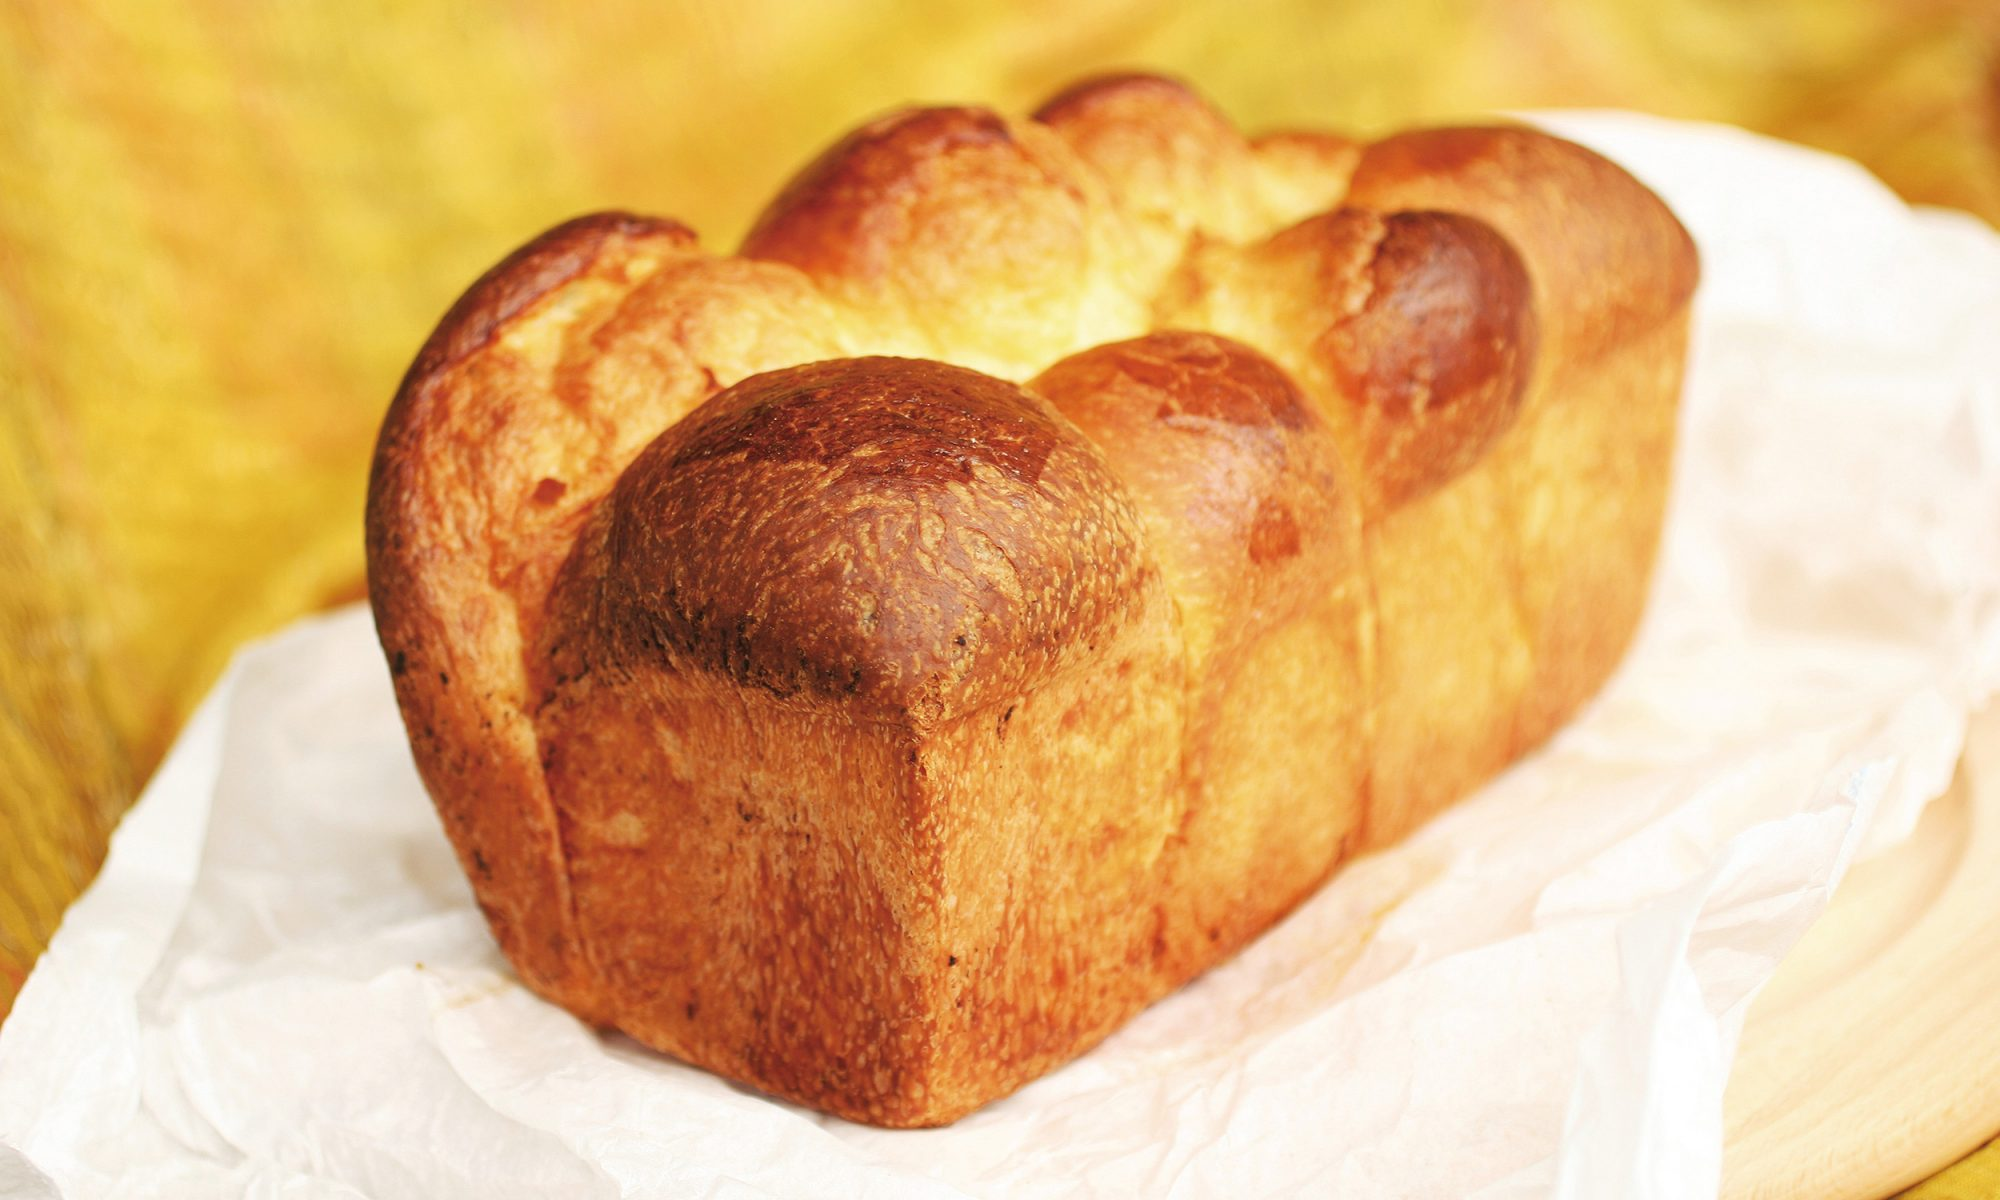 Once You Know How to Make Brioche, All Things Are Possible